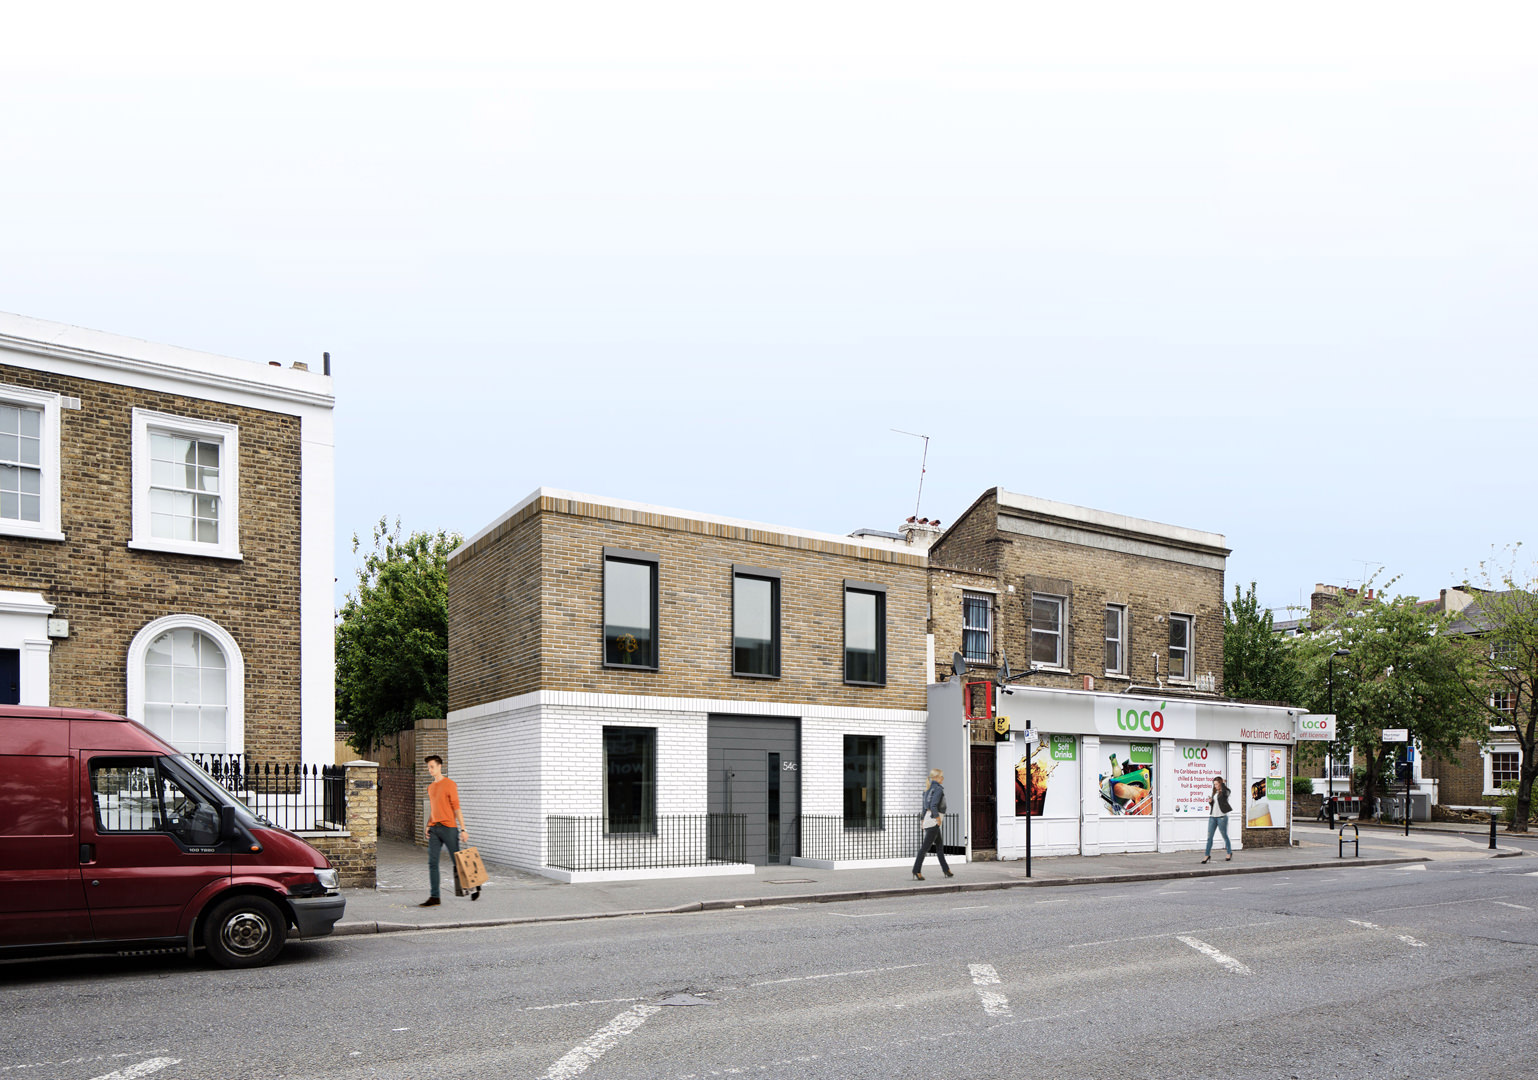 A new build two storey dwelling with a basement level on a central London garage site to create a 3 bedroom dwelling